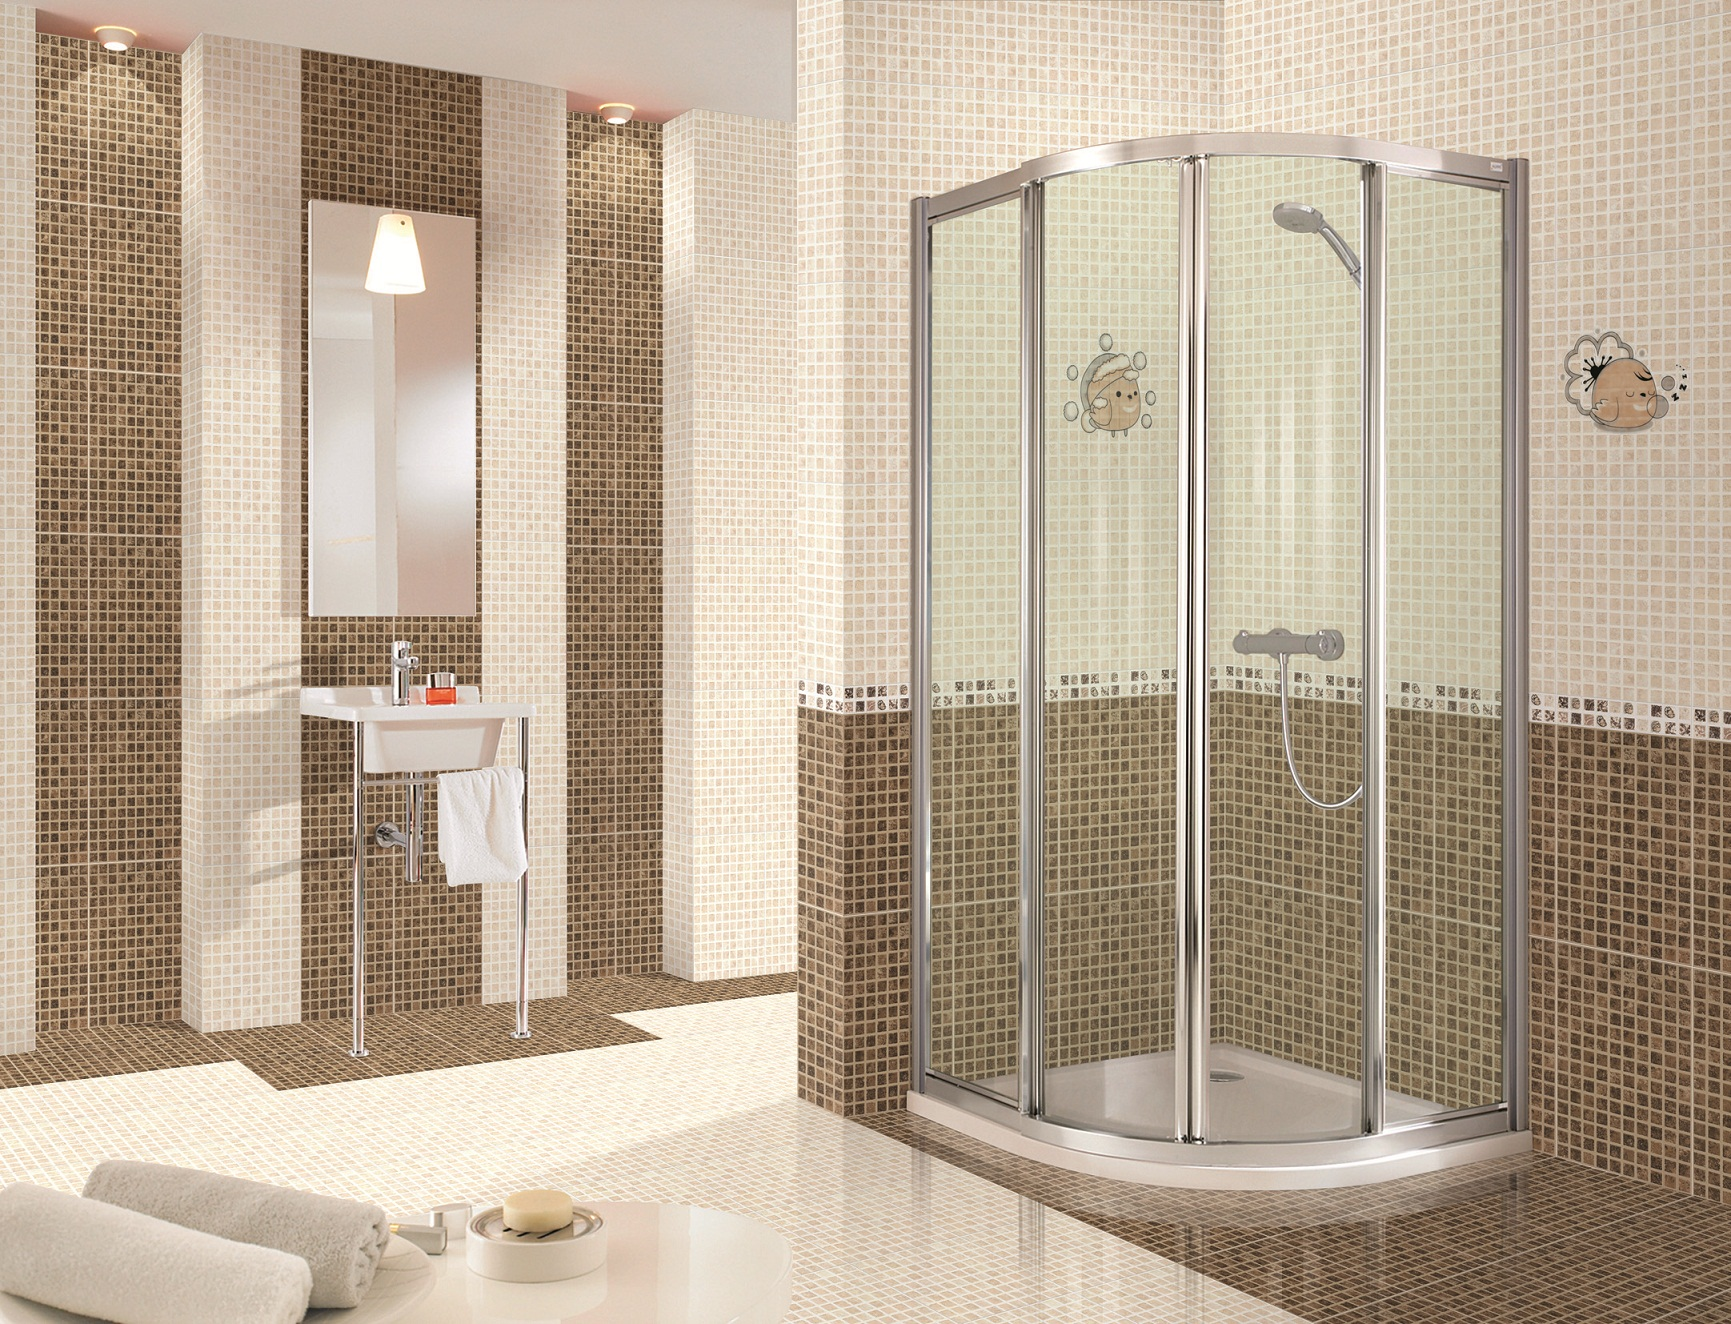 33 amazing ideas and pictures of modern bathroom shower tile ideas Bathroom design shower over bath